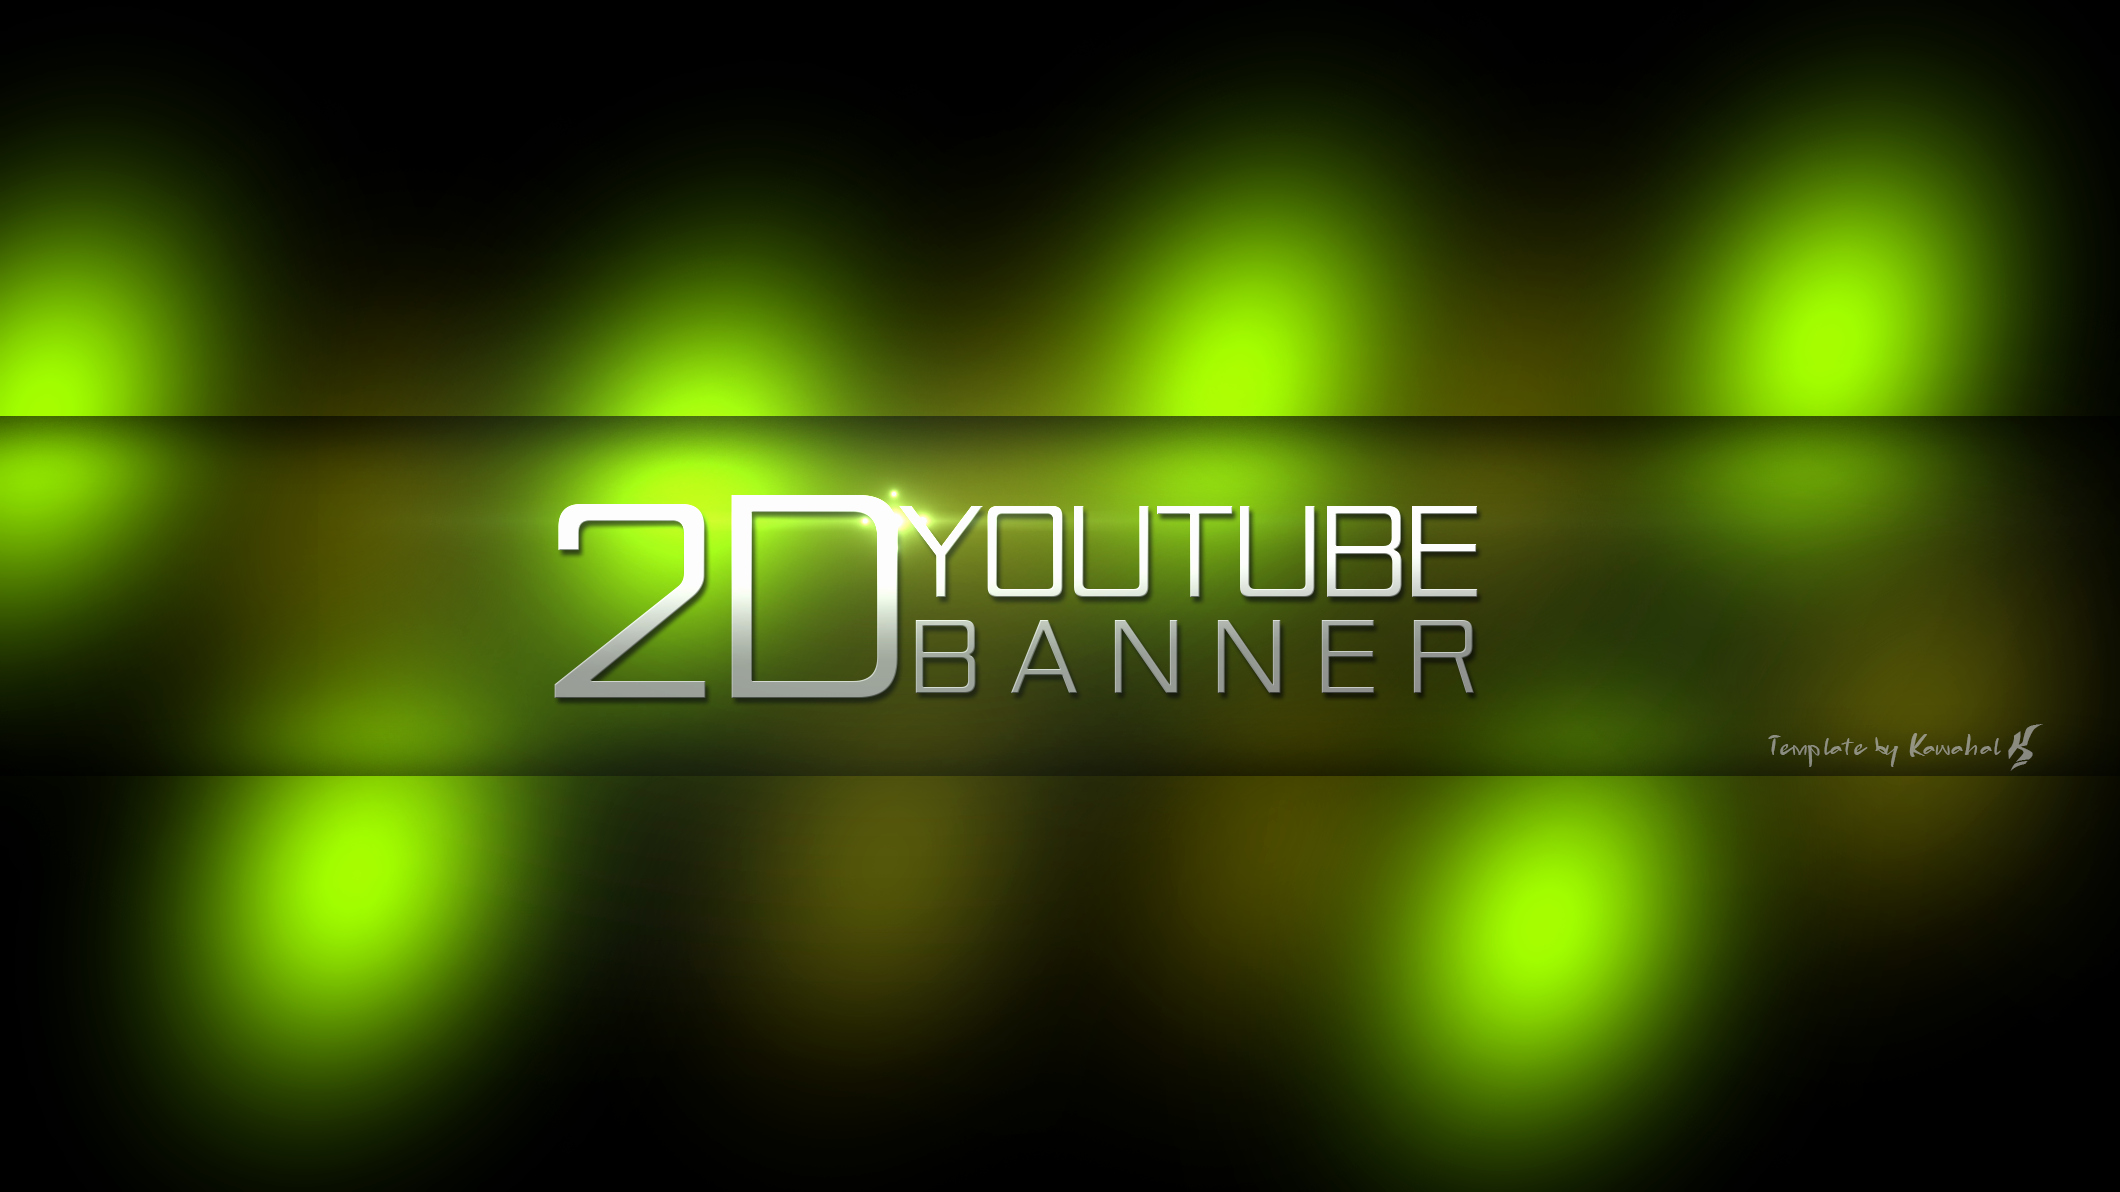 Youtube Banner Template Psd Best Of 2d Youtube Banner Template Psd by Style P On Deviantart